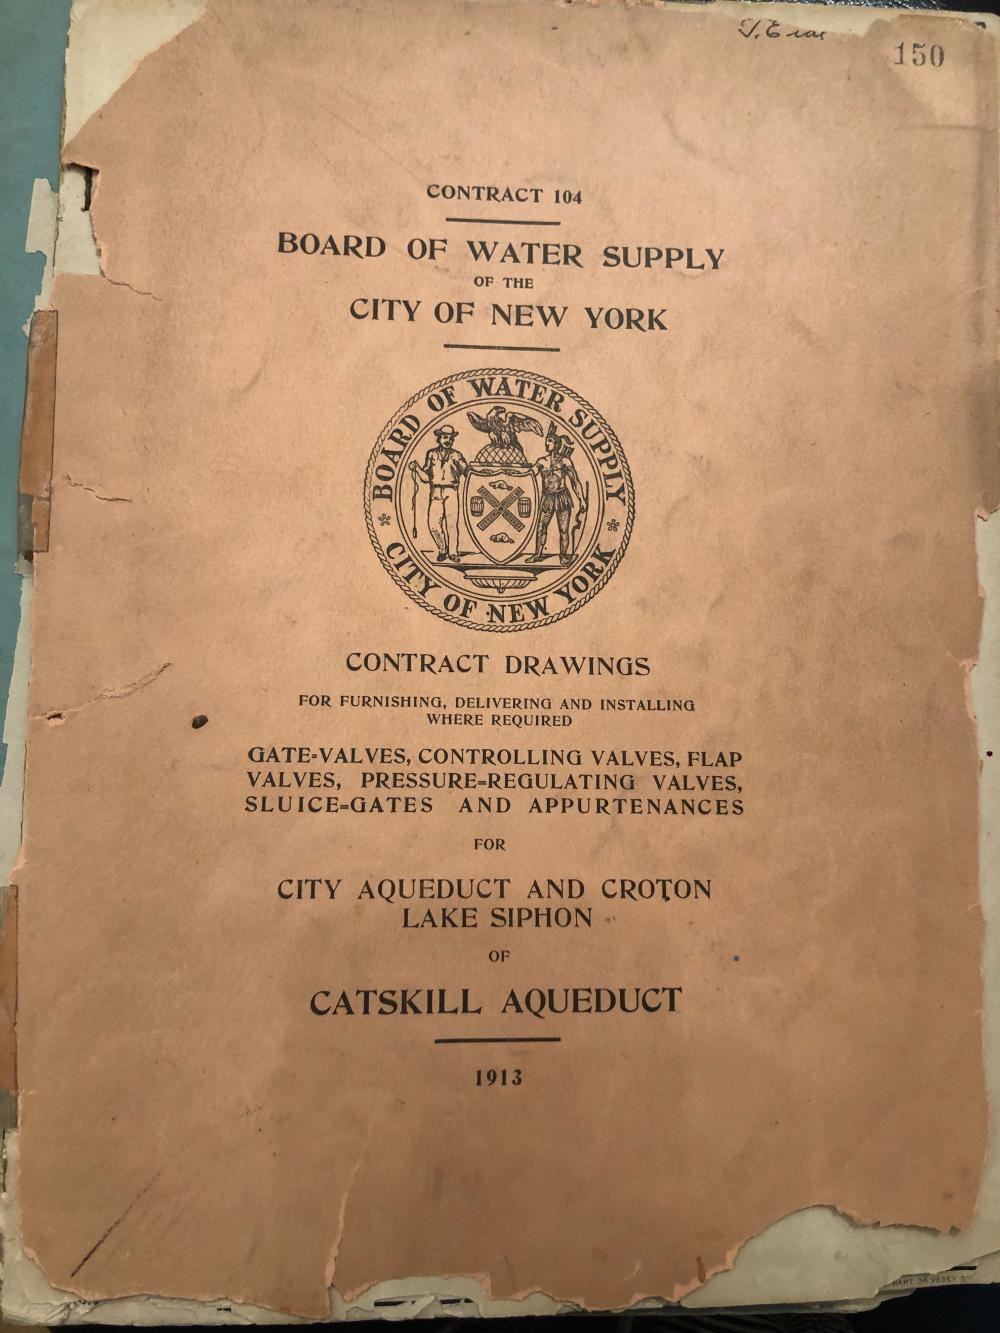 1913 catskill aqueduct contract drawings